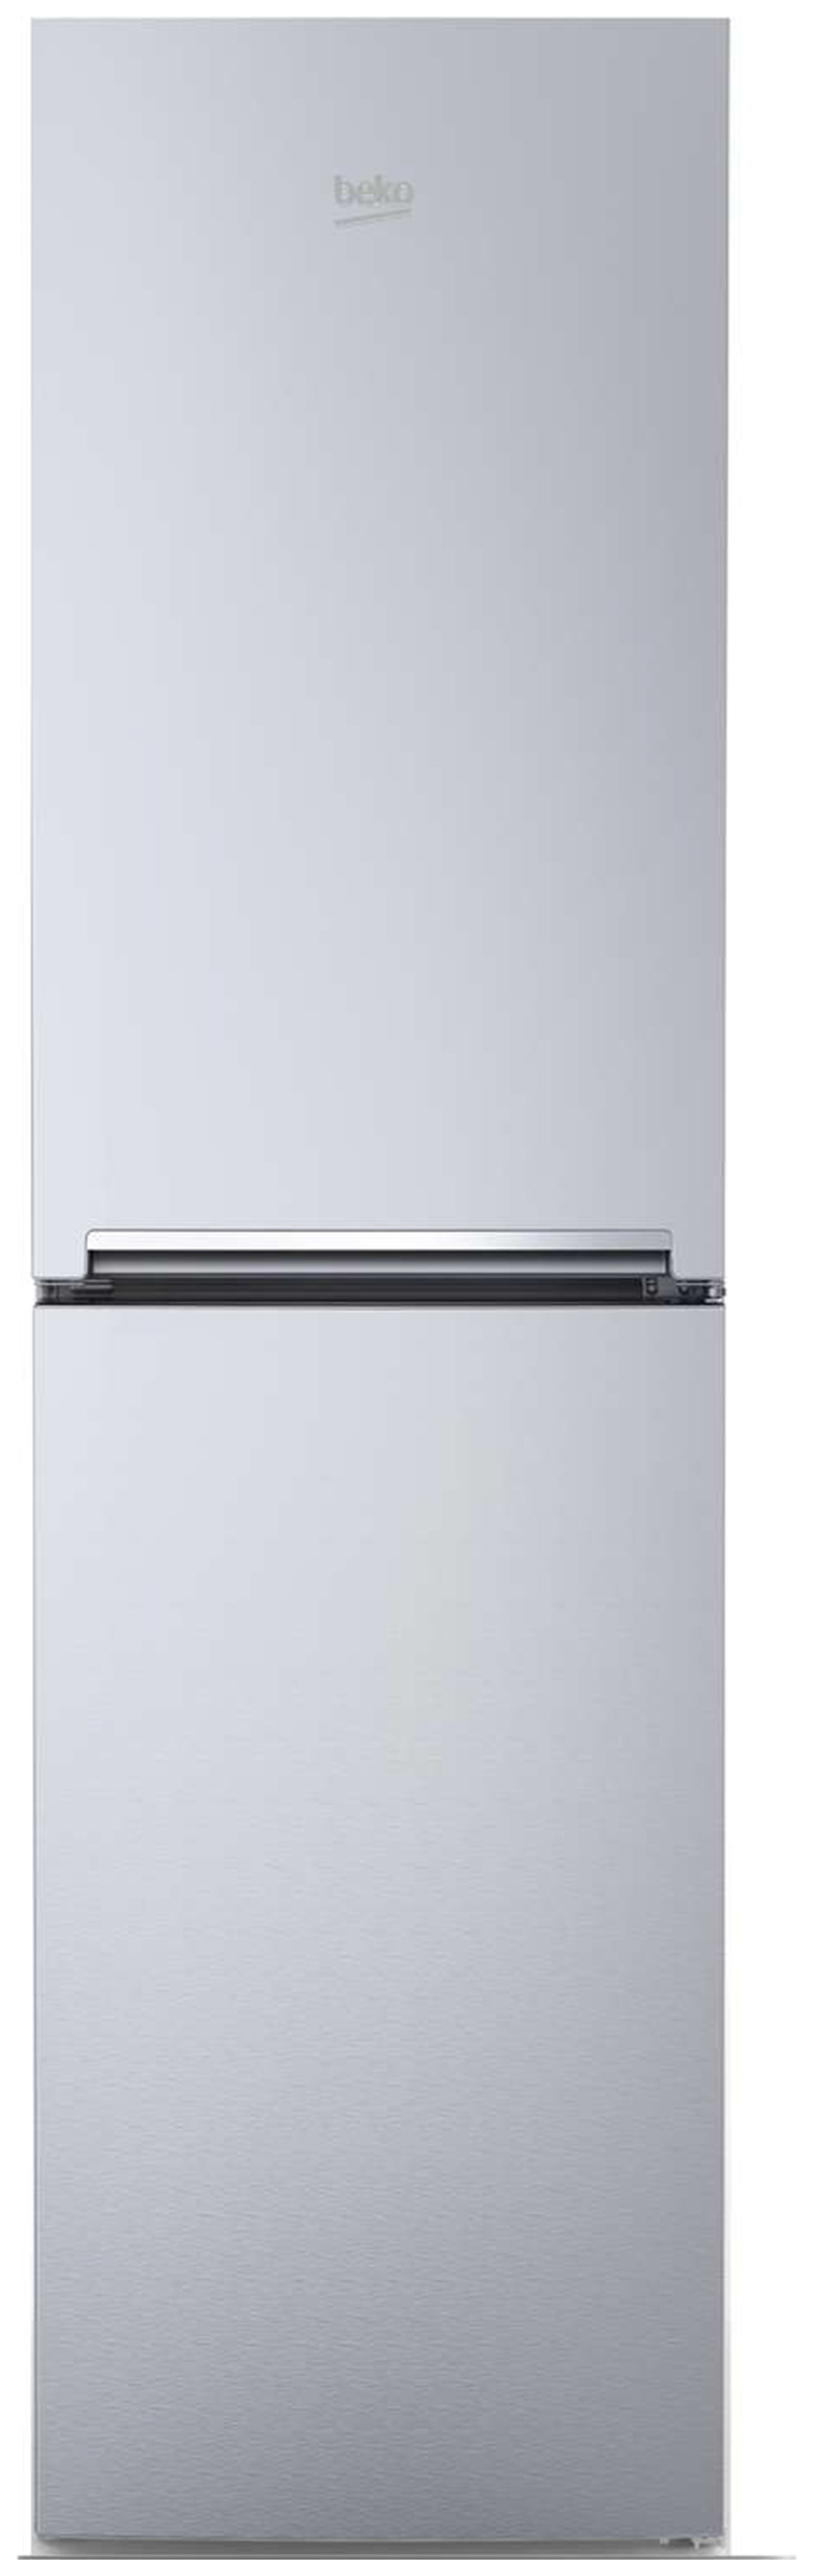 Beko CFG1582S Fridge Freezer - Silver Best Price, Cheapest Prices